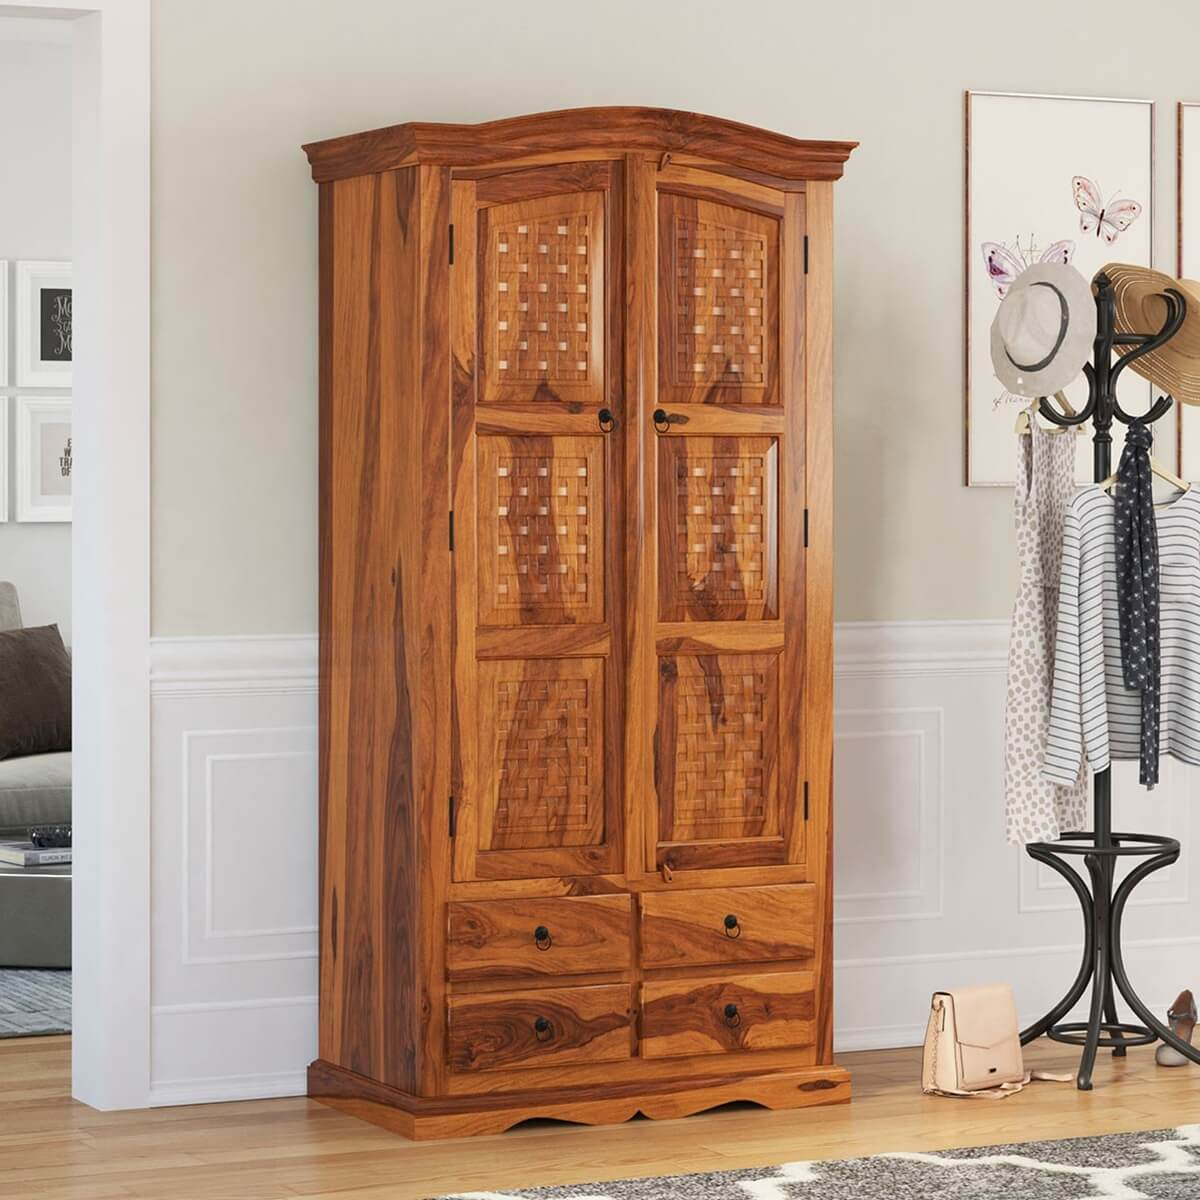 Crawford Handcrafted Solid Wood Armoire Wardrobe With Drawers